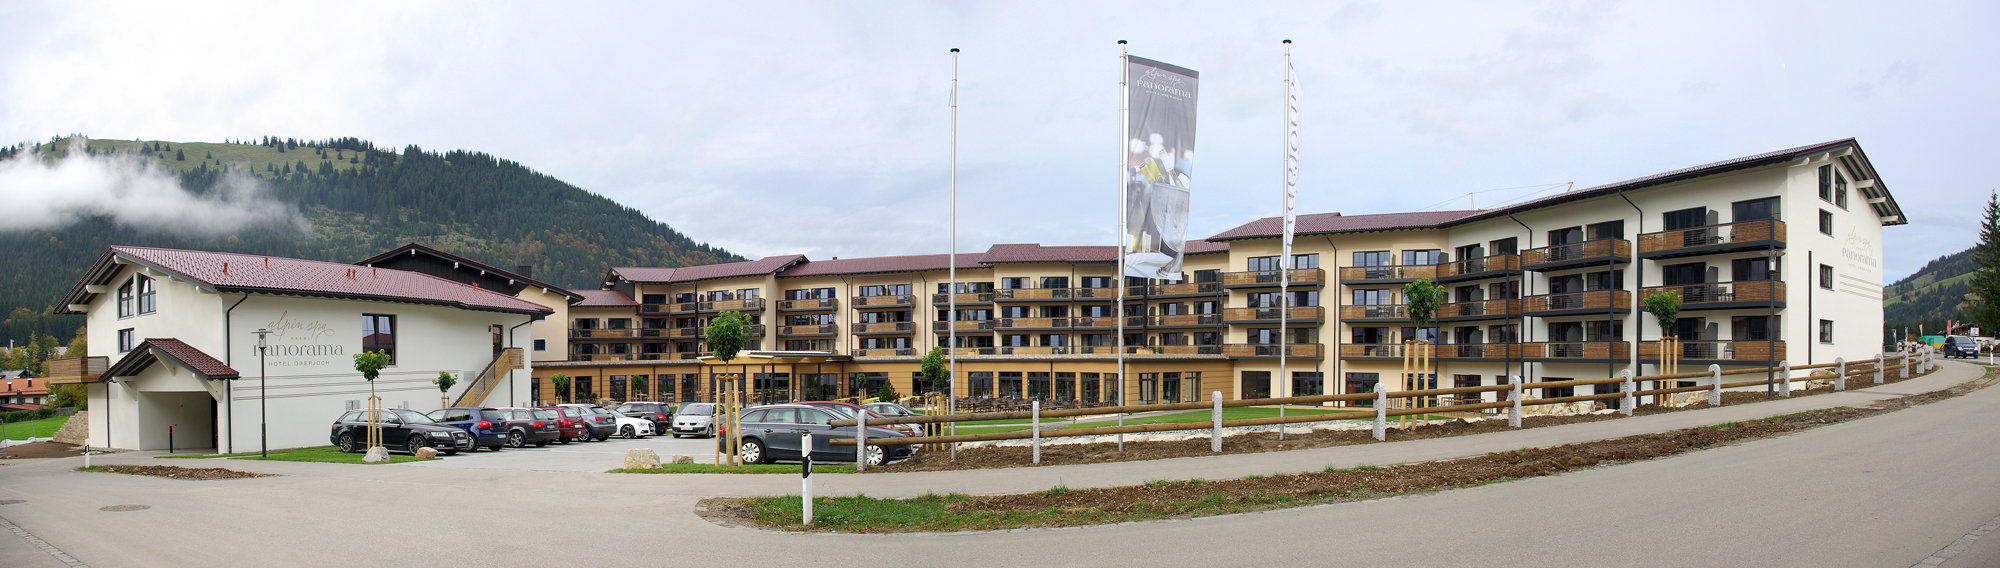 Alpin Spa Panorama Hotel Oberjoch